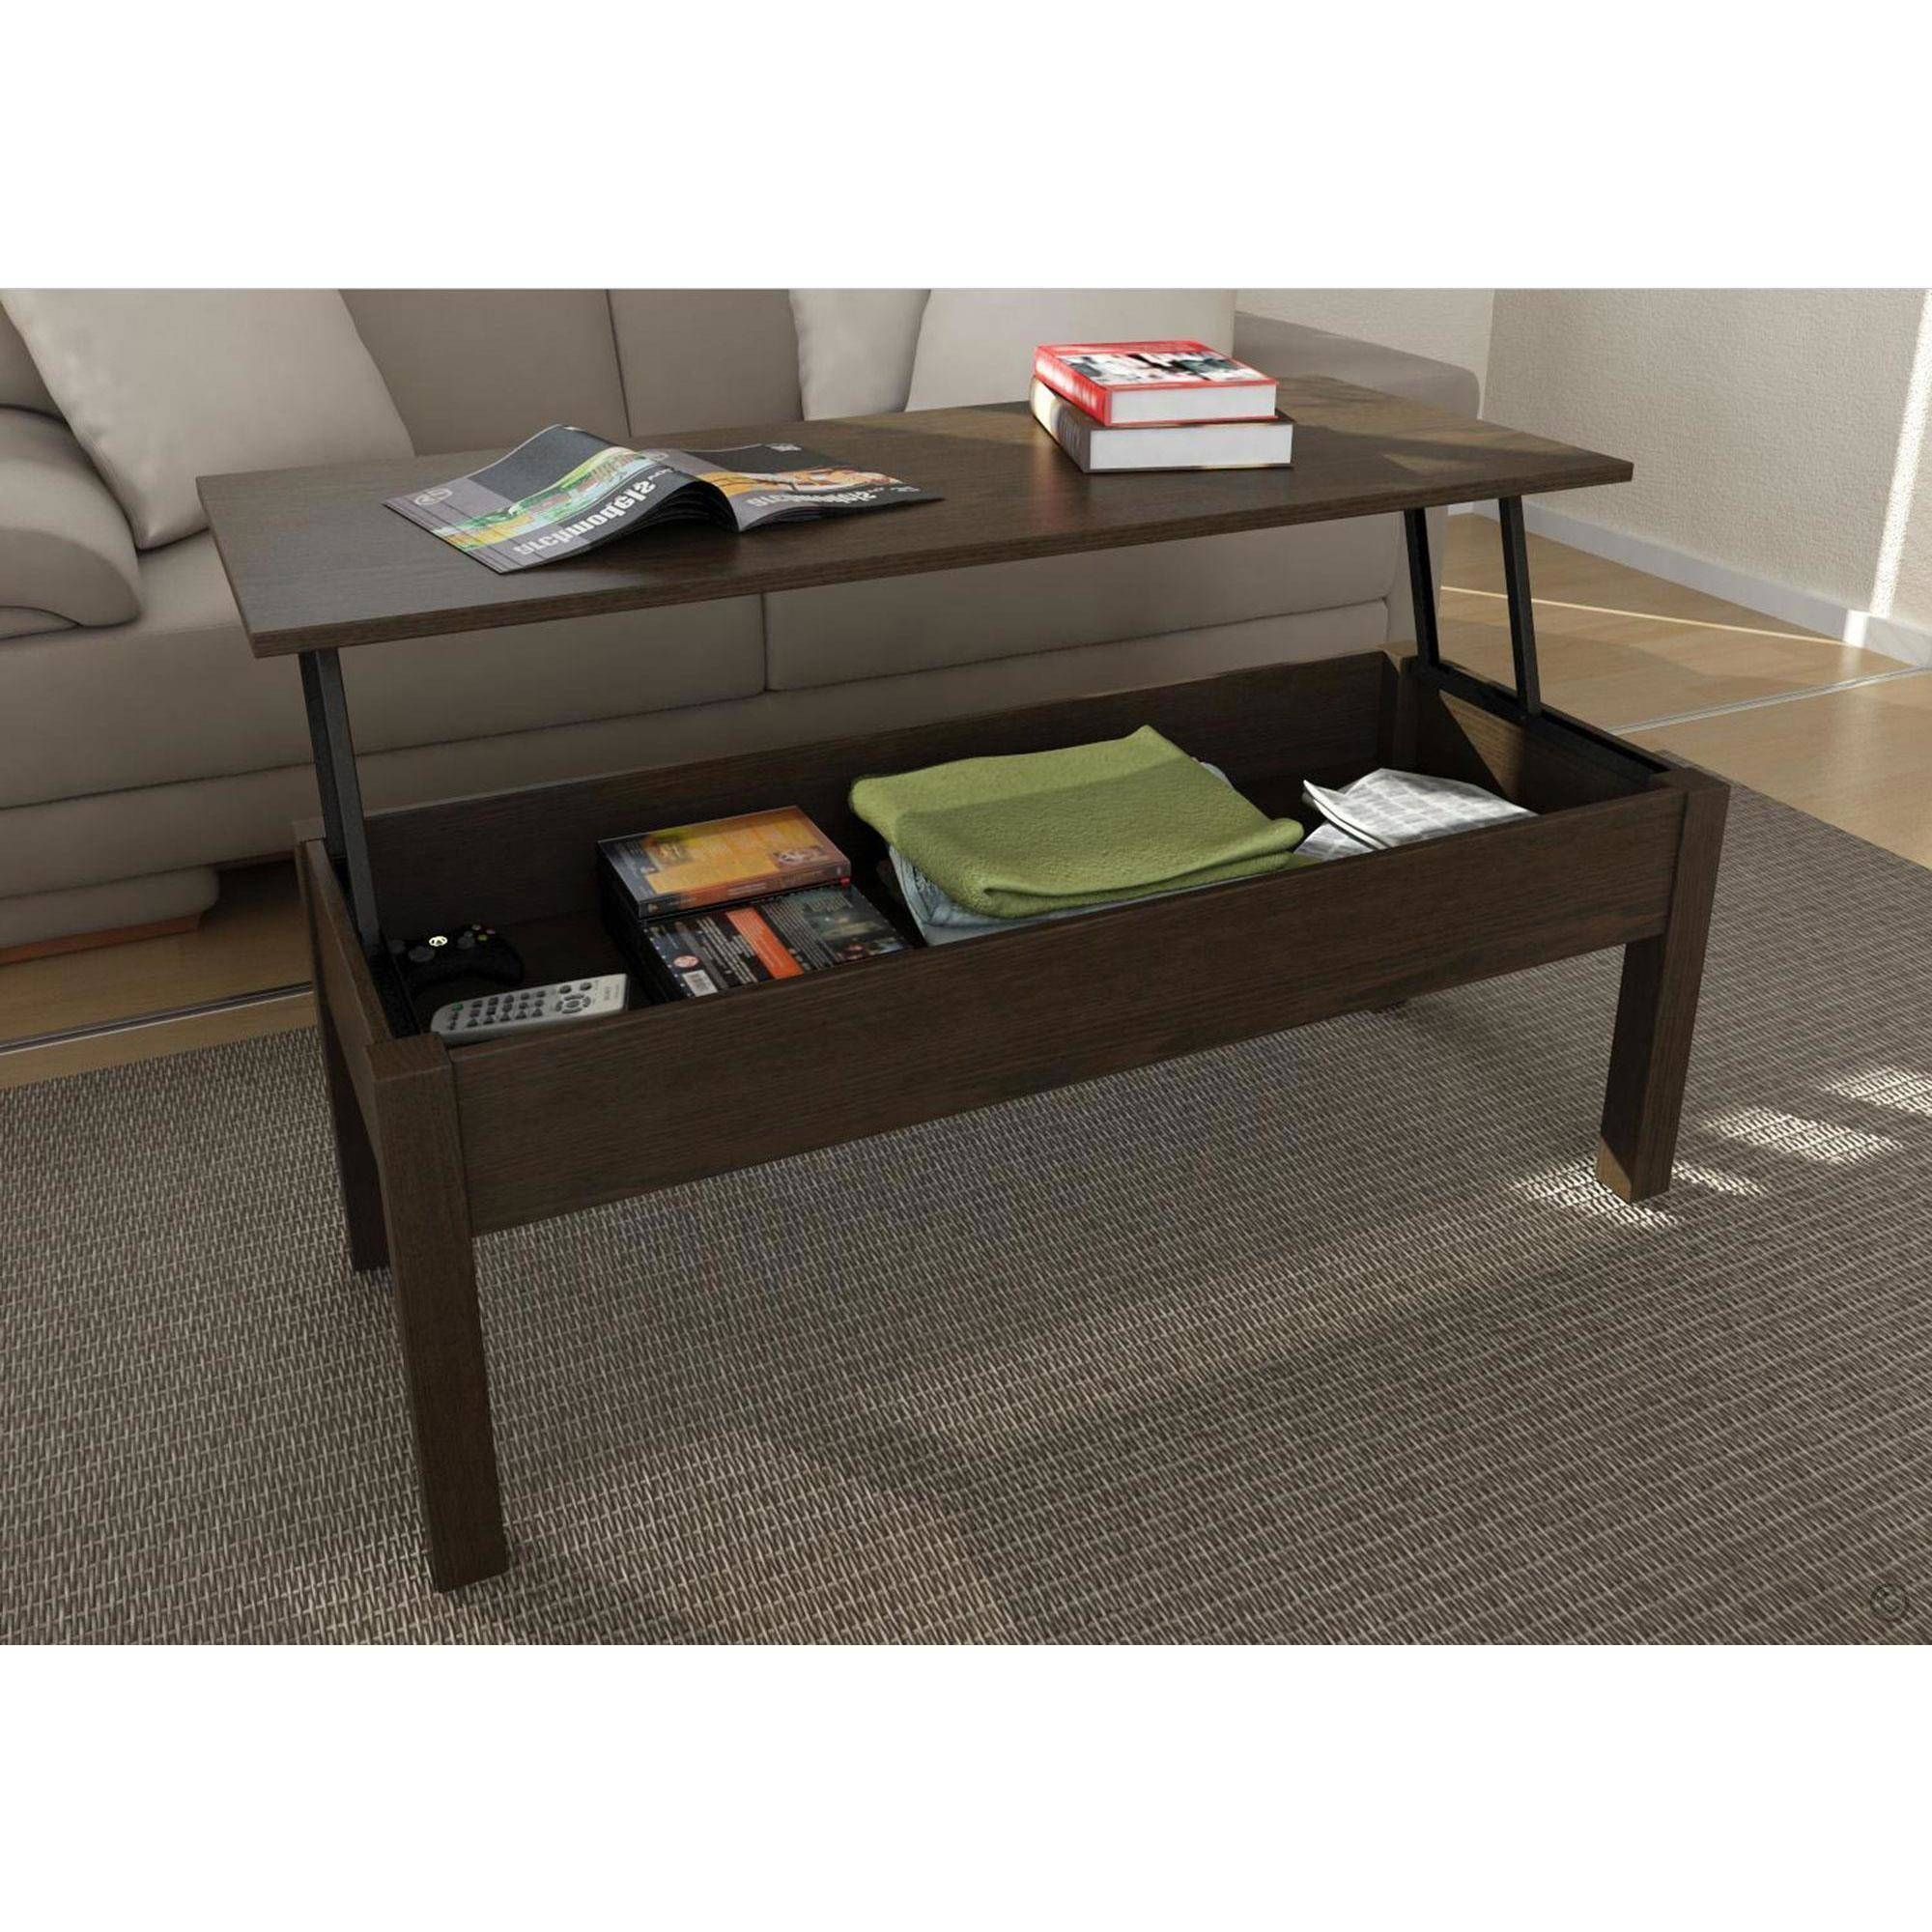 Mainstays Lift-Top Coffee Table, Multiple Colors - Walmart regarding Coffee Tables With Shelves (Image 22 of 30)